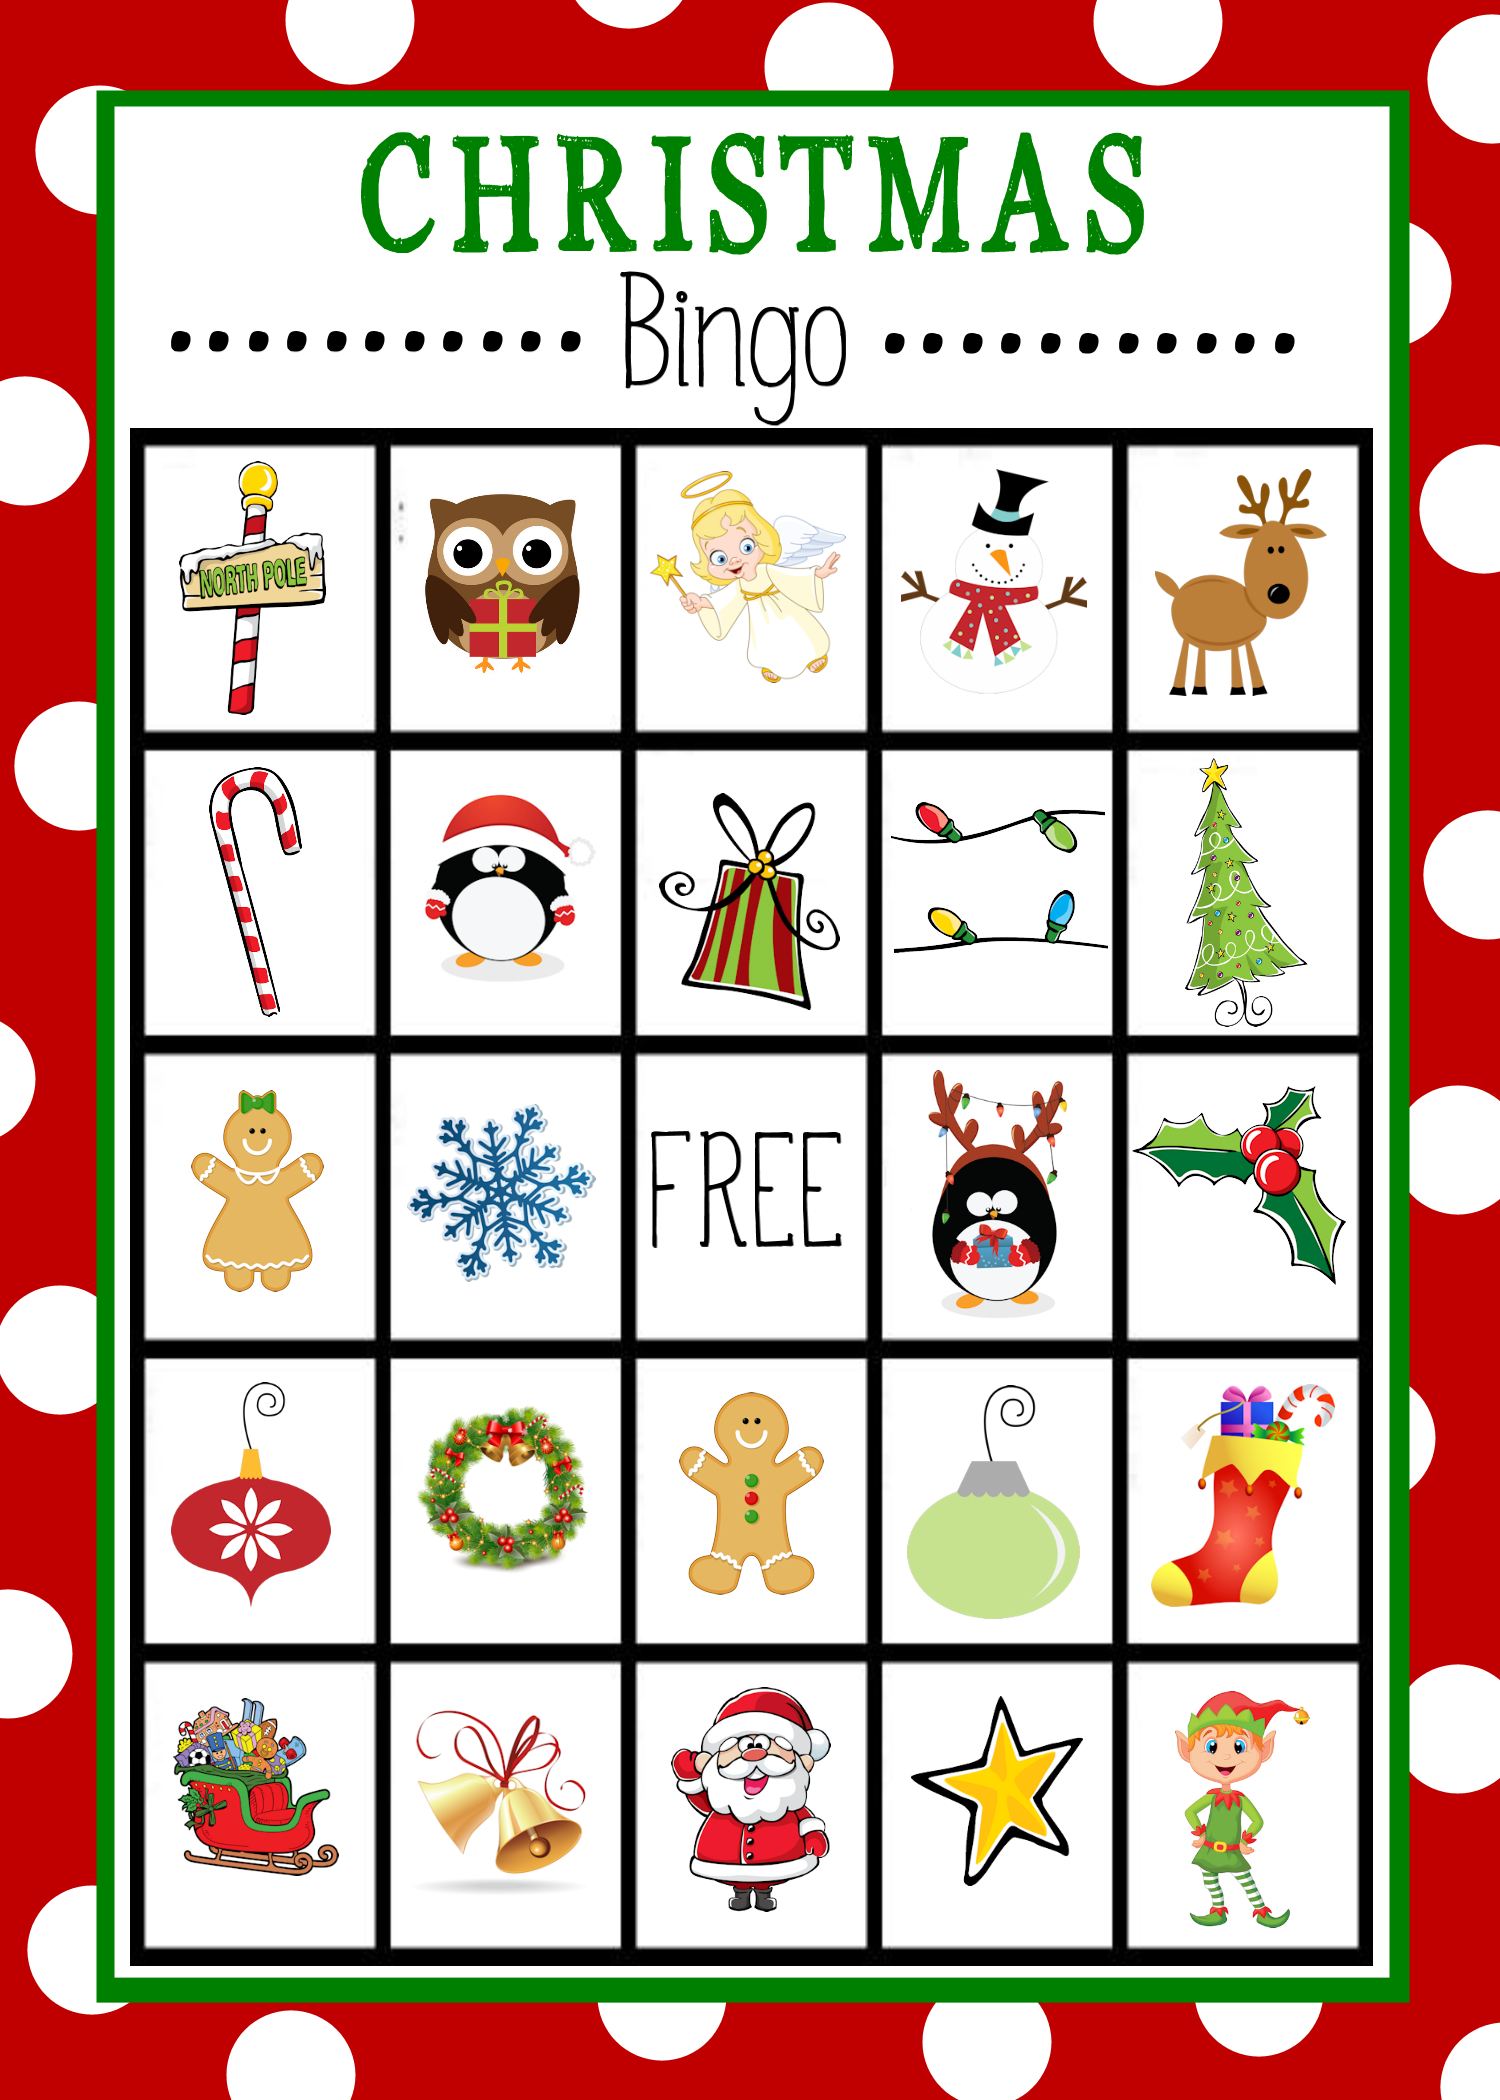 Free Printable Christmas Bingo Game | Christmas | Pinterest - Free Printable Bingo